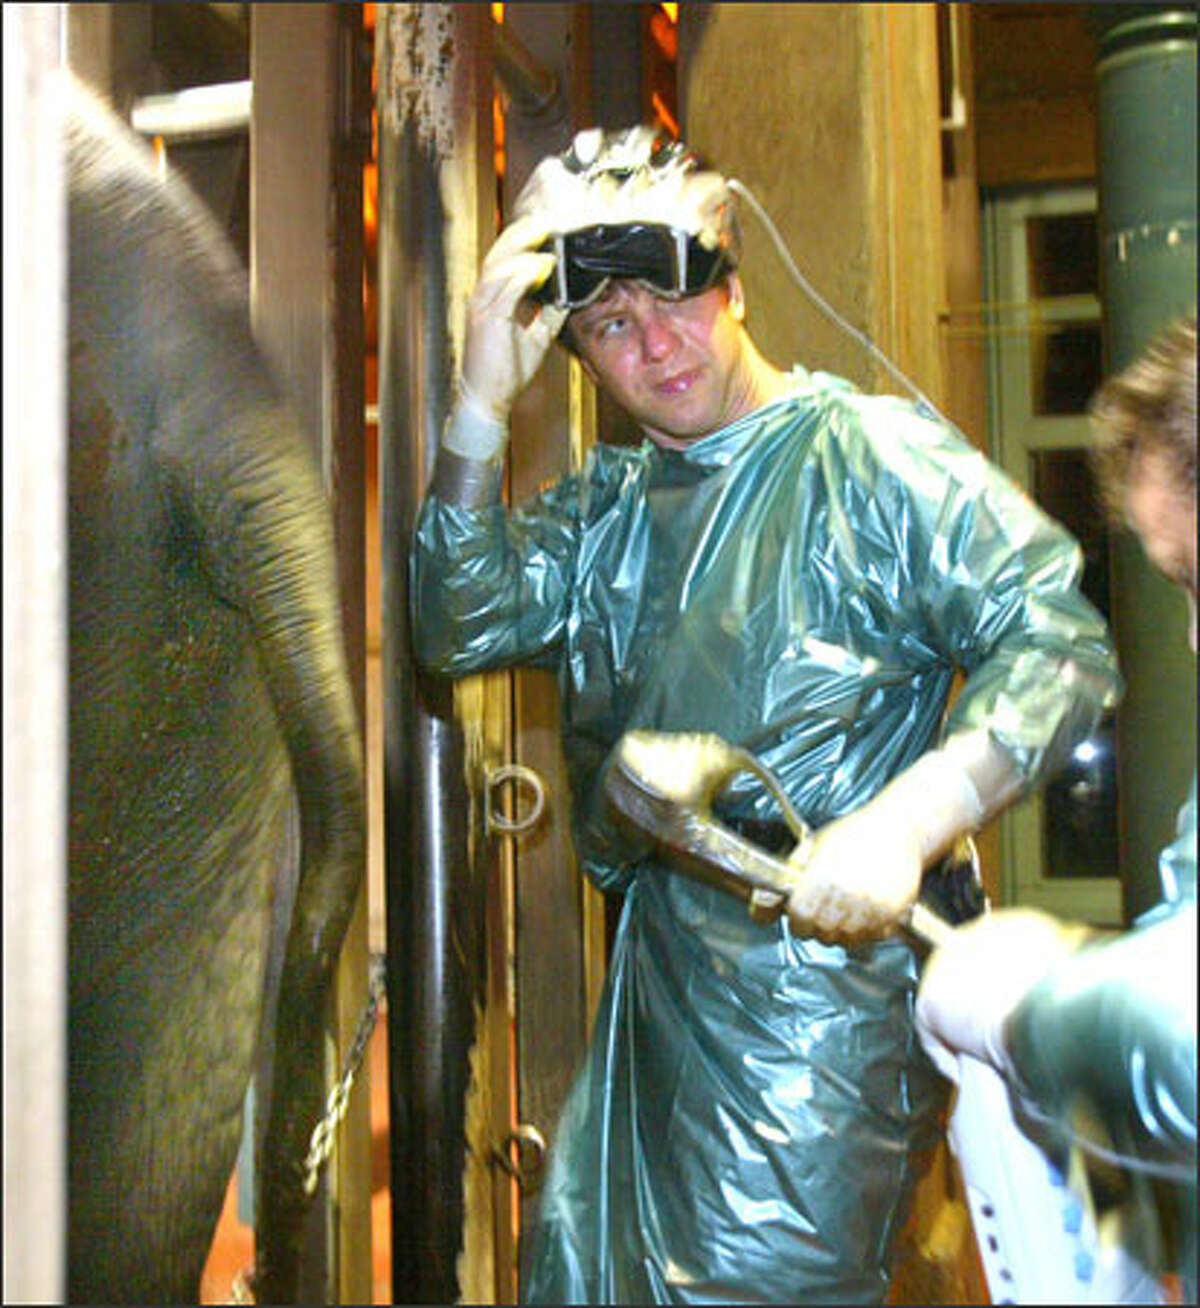 Dr. Thomas Hildebrandt, a German expert in elephant reproduction, prepares to use a probe to see if Chai, an elephant at Seattle's Woodland Park Zoo, is ready for artificial insemination. The hours-long process is a tricky business.